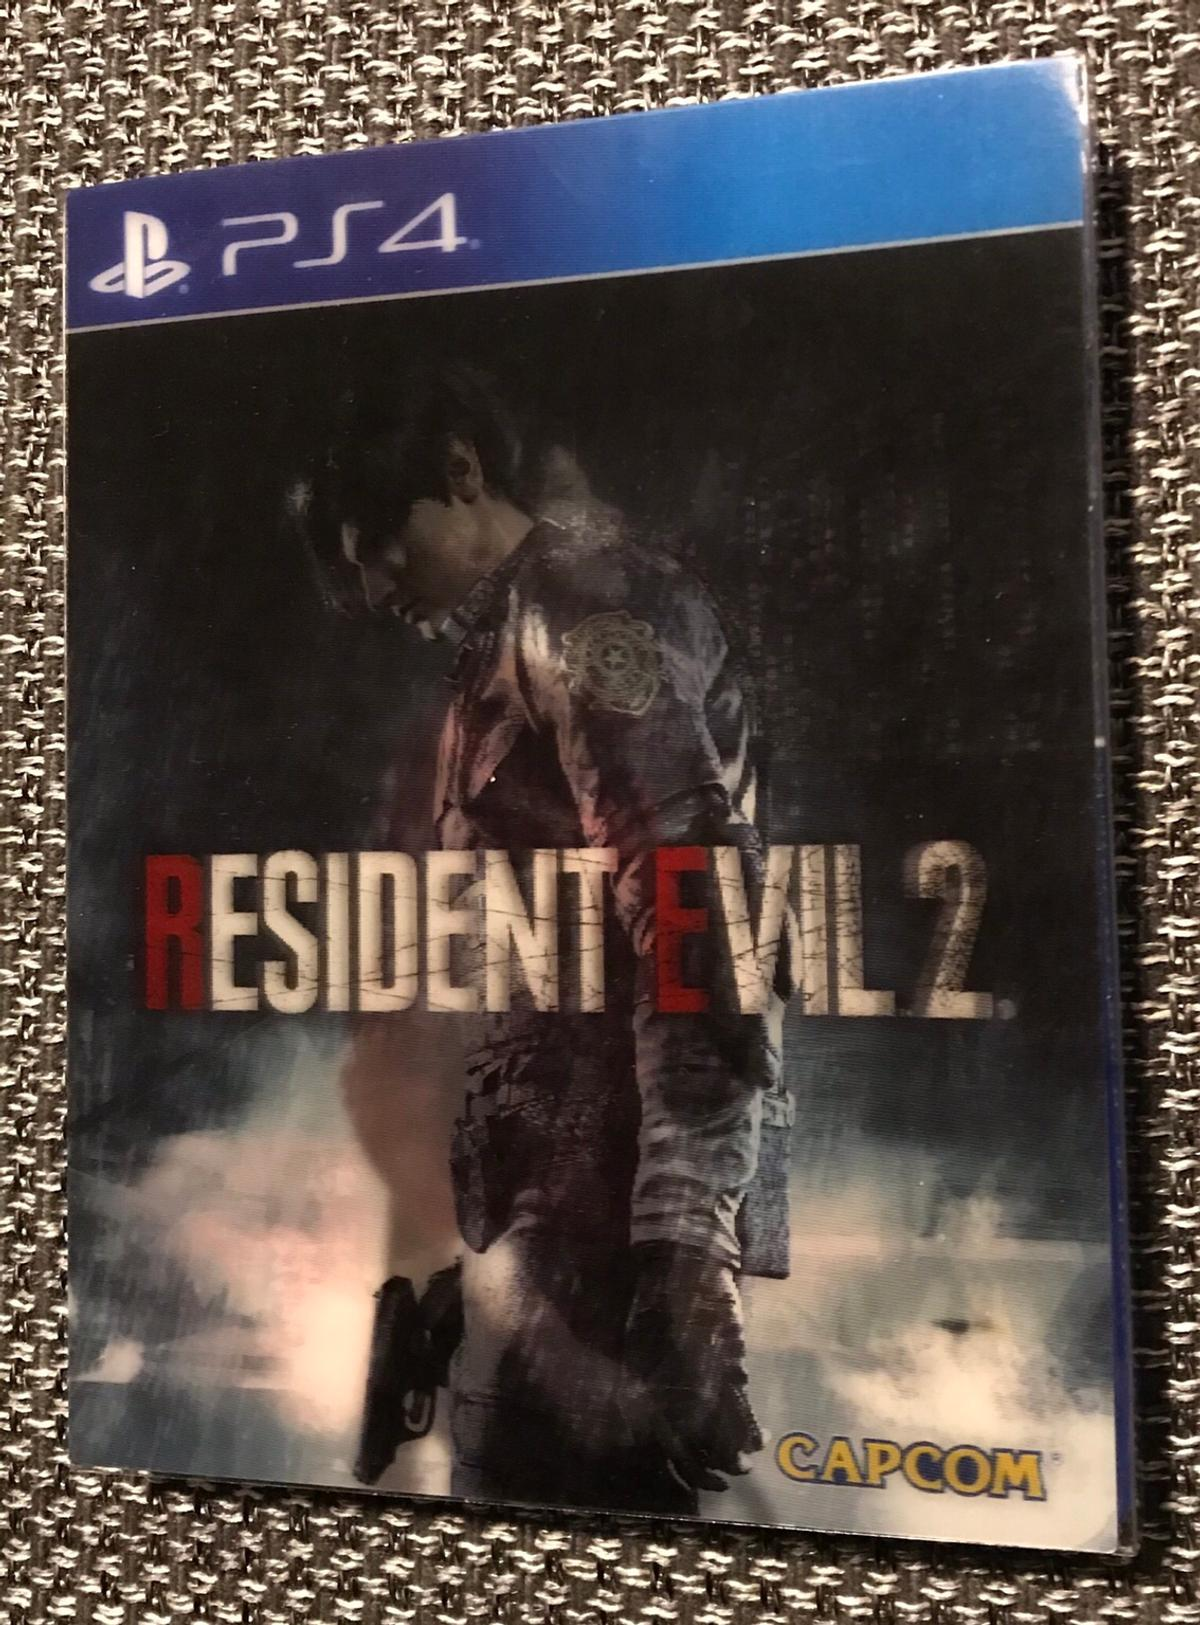 Resident Evil 2 Remake in 67549 Worms for €50.00 for sale | Shpock